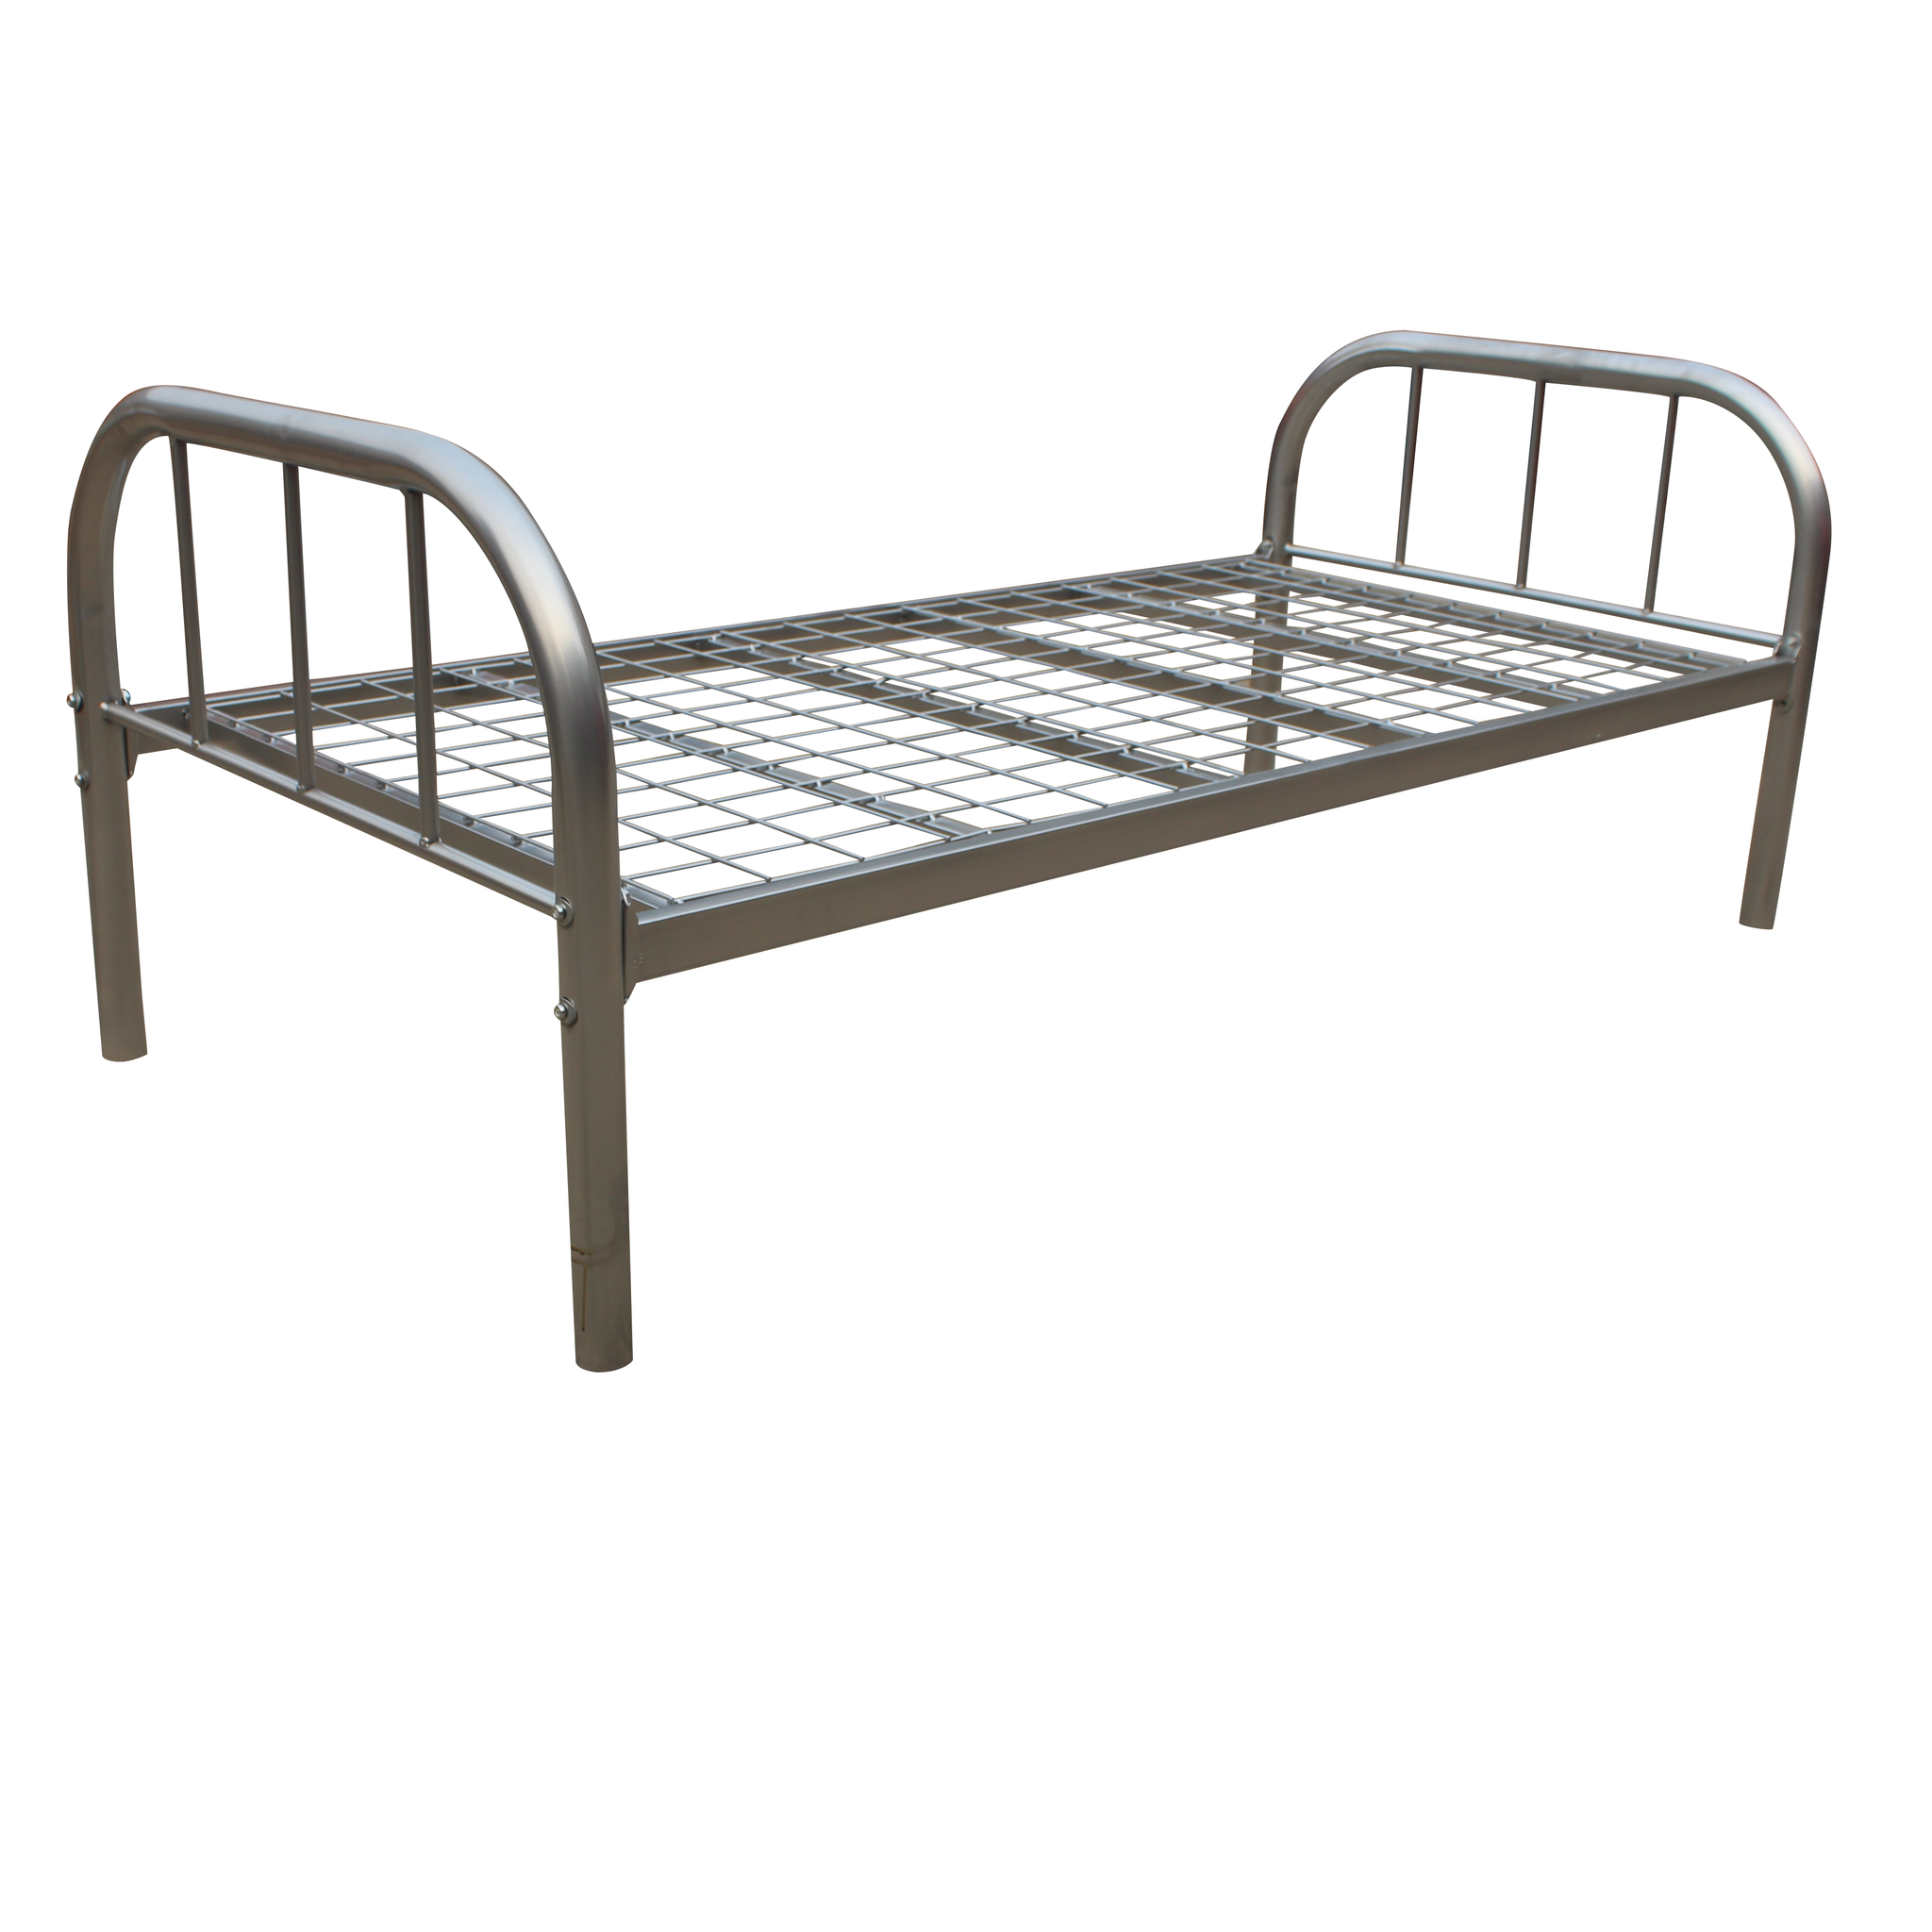 Labour camp furniture (Bulk Order Only) Prices neg